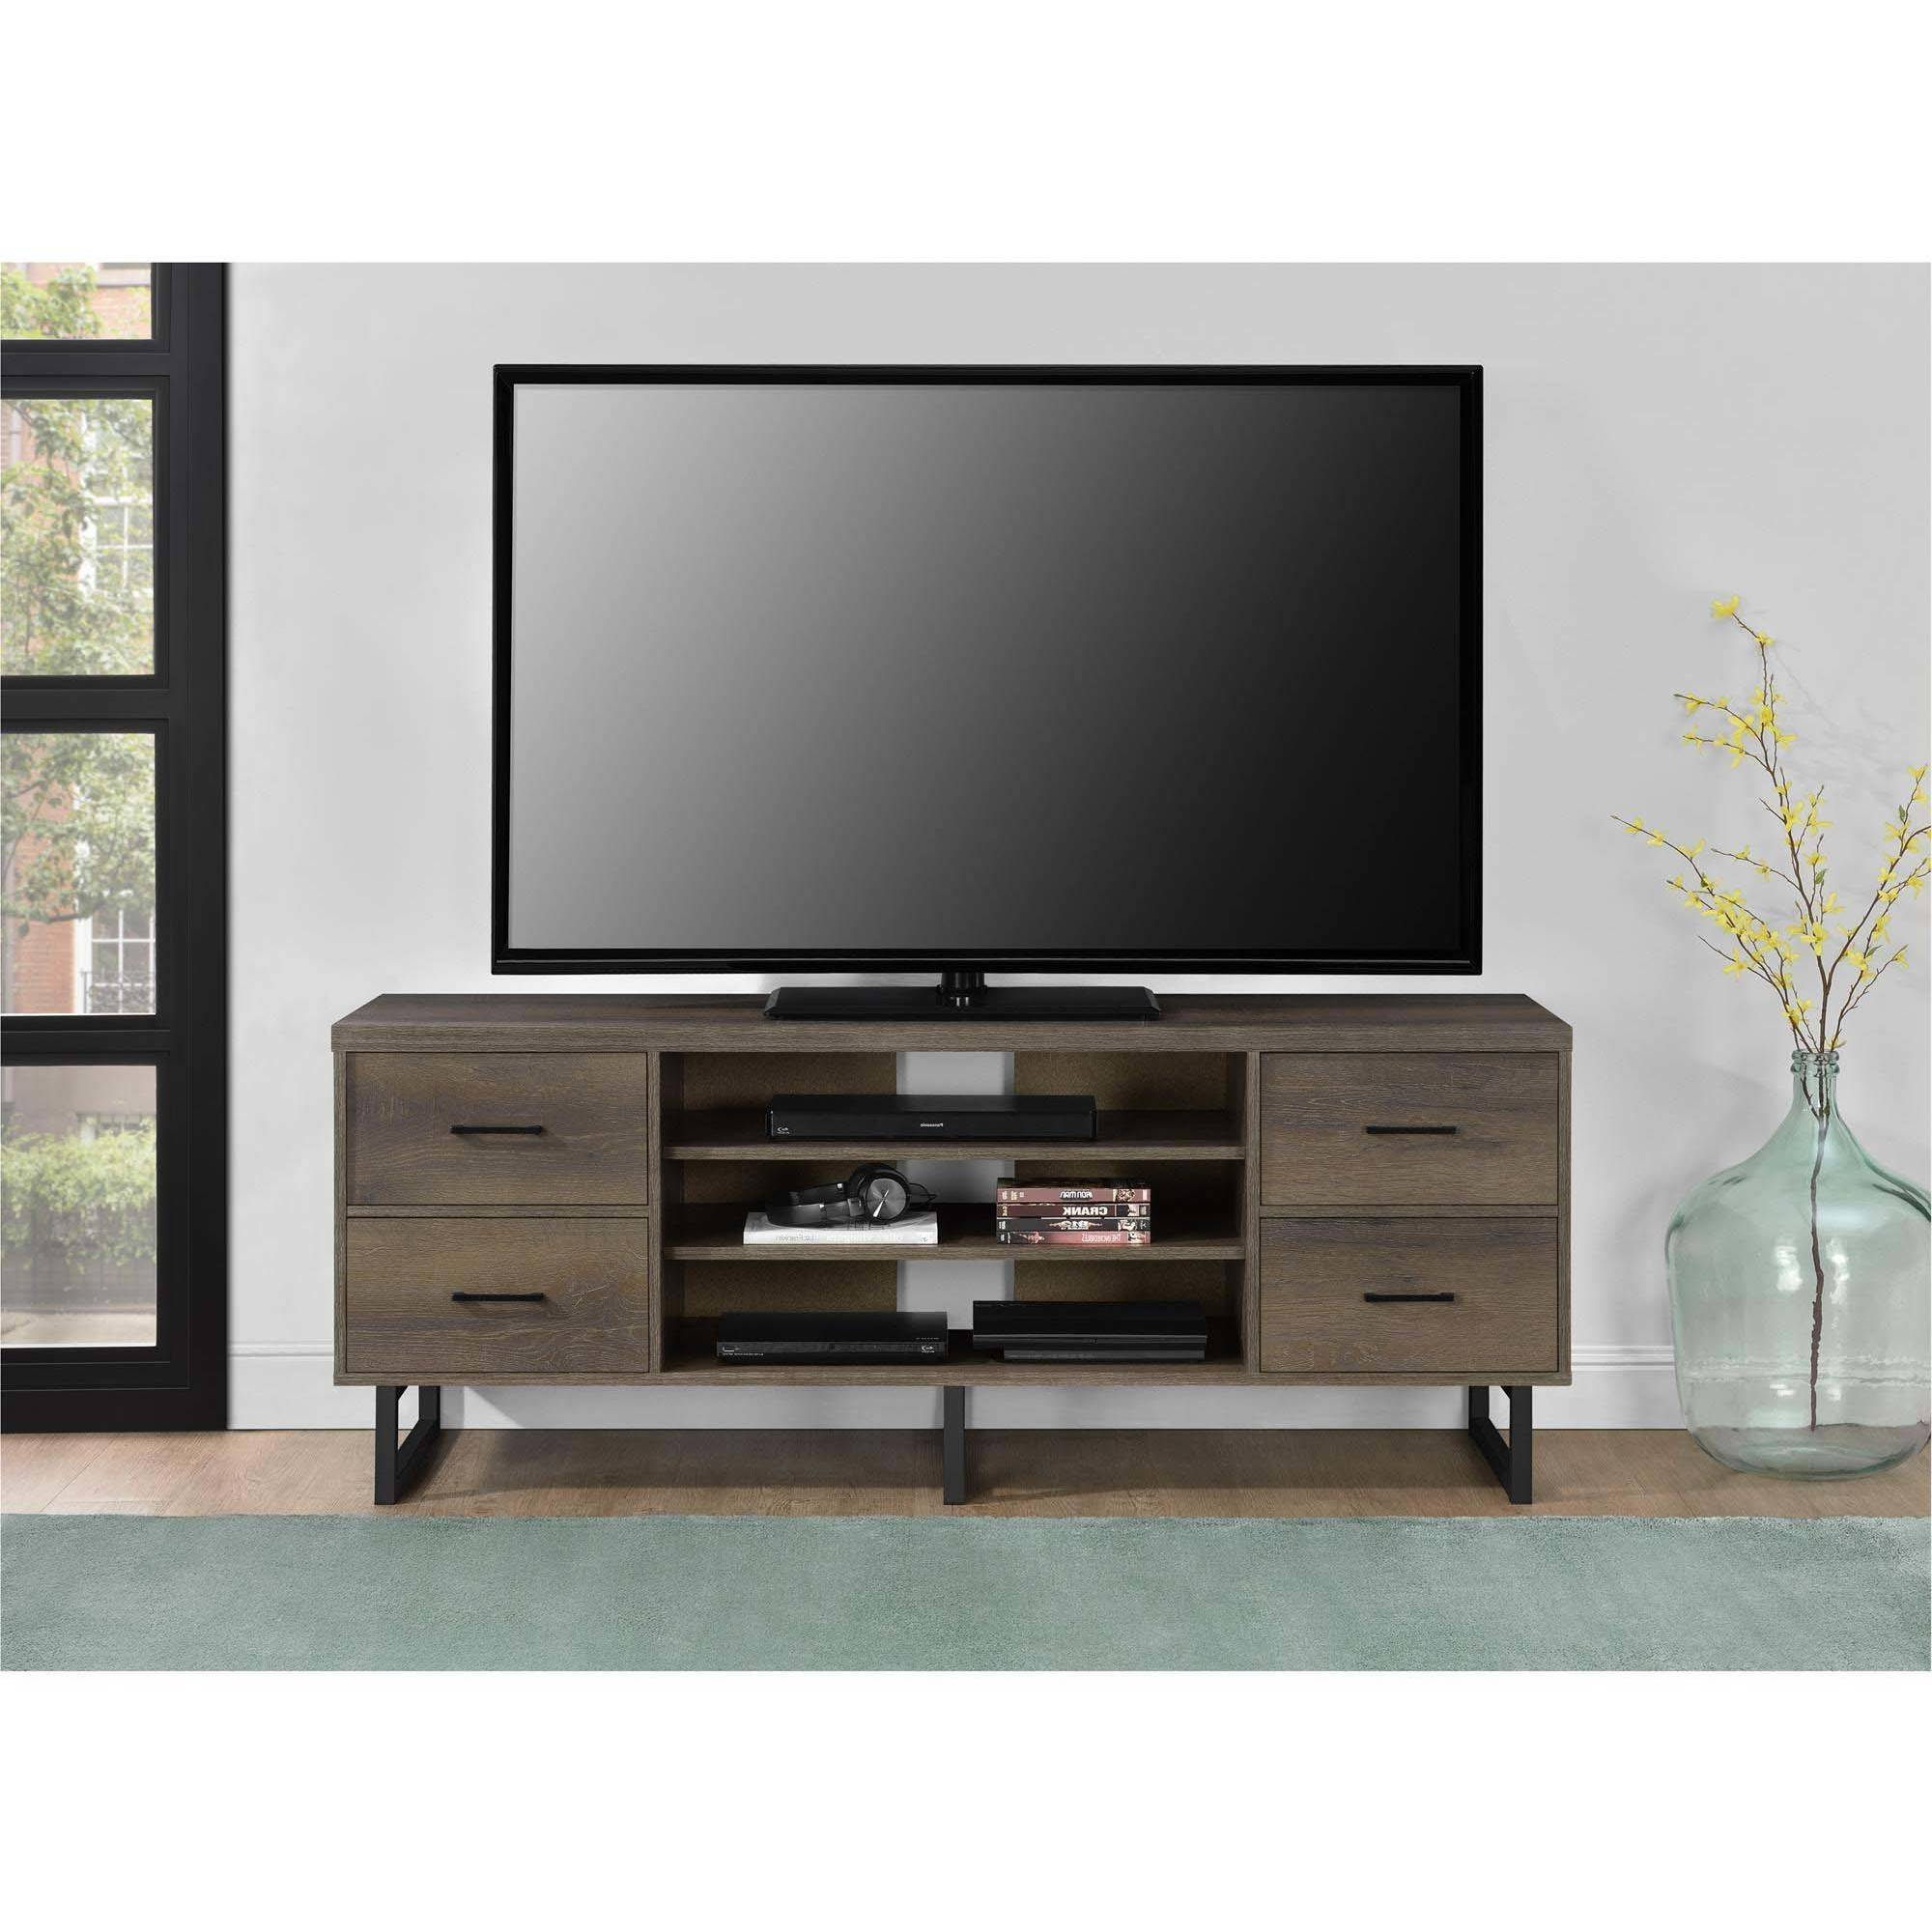 Ameriwood Home Candon Tv Stand With Bins For Tvs Up To 60 Intended For Current Jackson Wide Tv Stands (View 2 of 10)